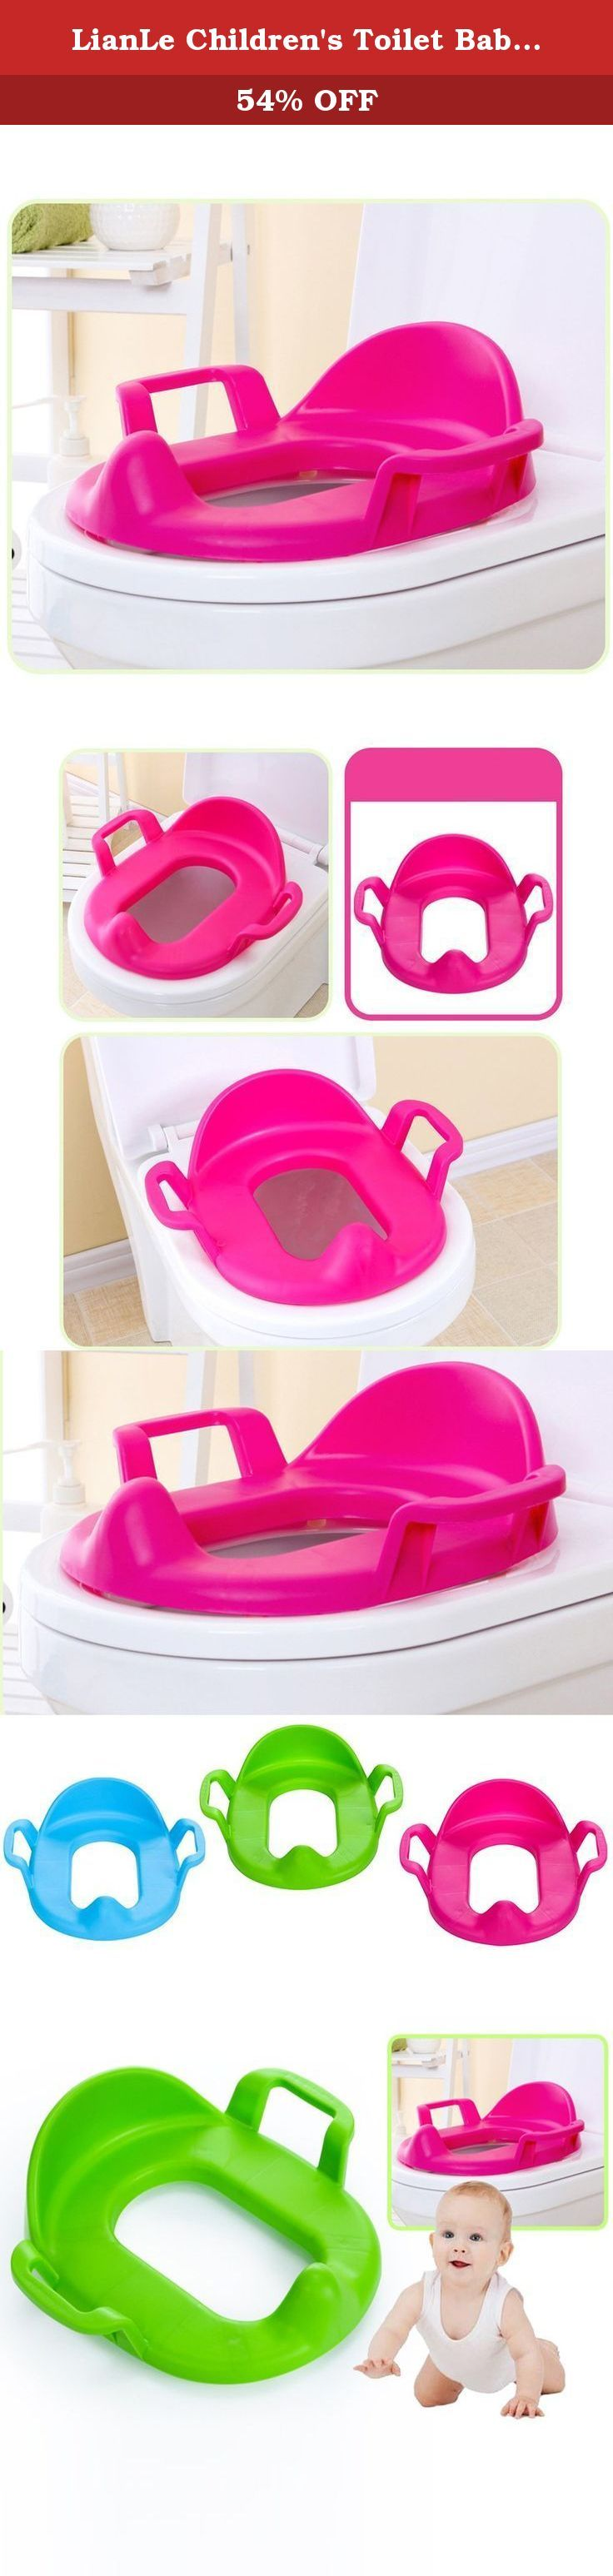 LianLe Children's Toilet Baby Toilet Seat Washers for Boys and Girls. Package Including: 1 *Baby Potty Training Seat Ring .